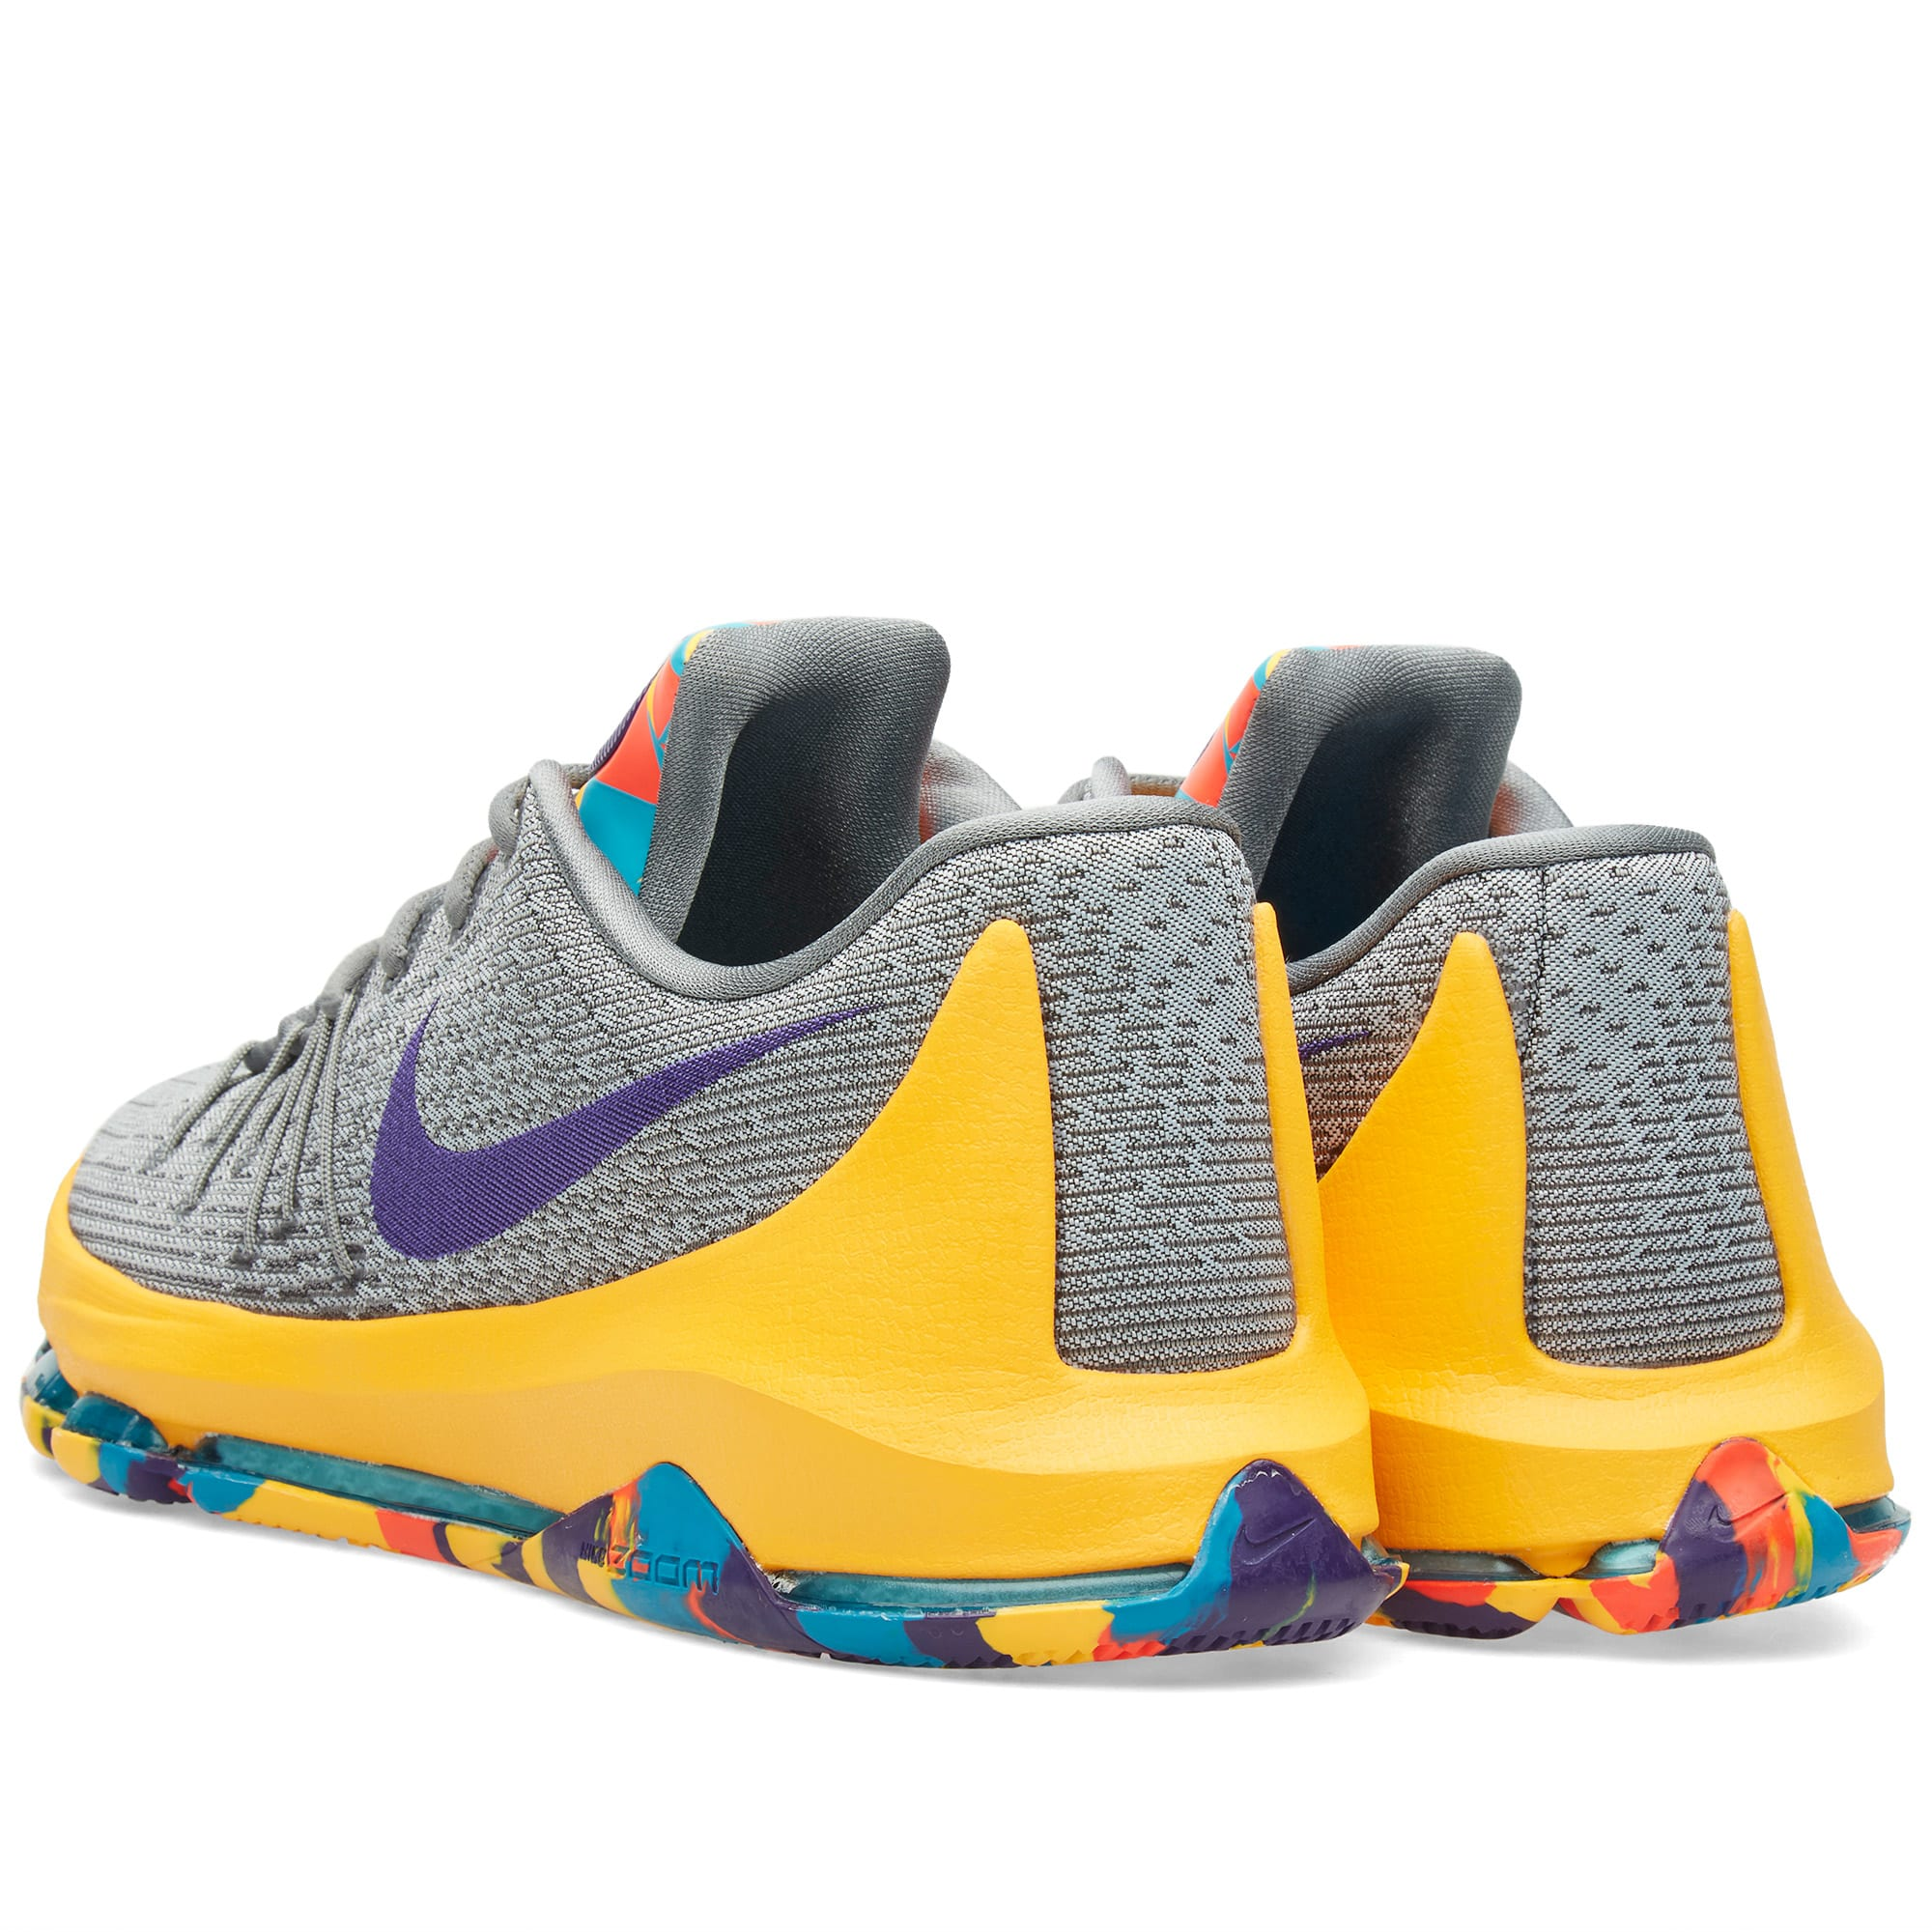 separation shoes 76f5e f9dc7 Nike KD 8  P.G. County  Wolf Grey   Court Purple   END.